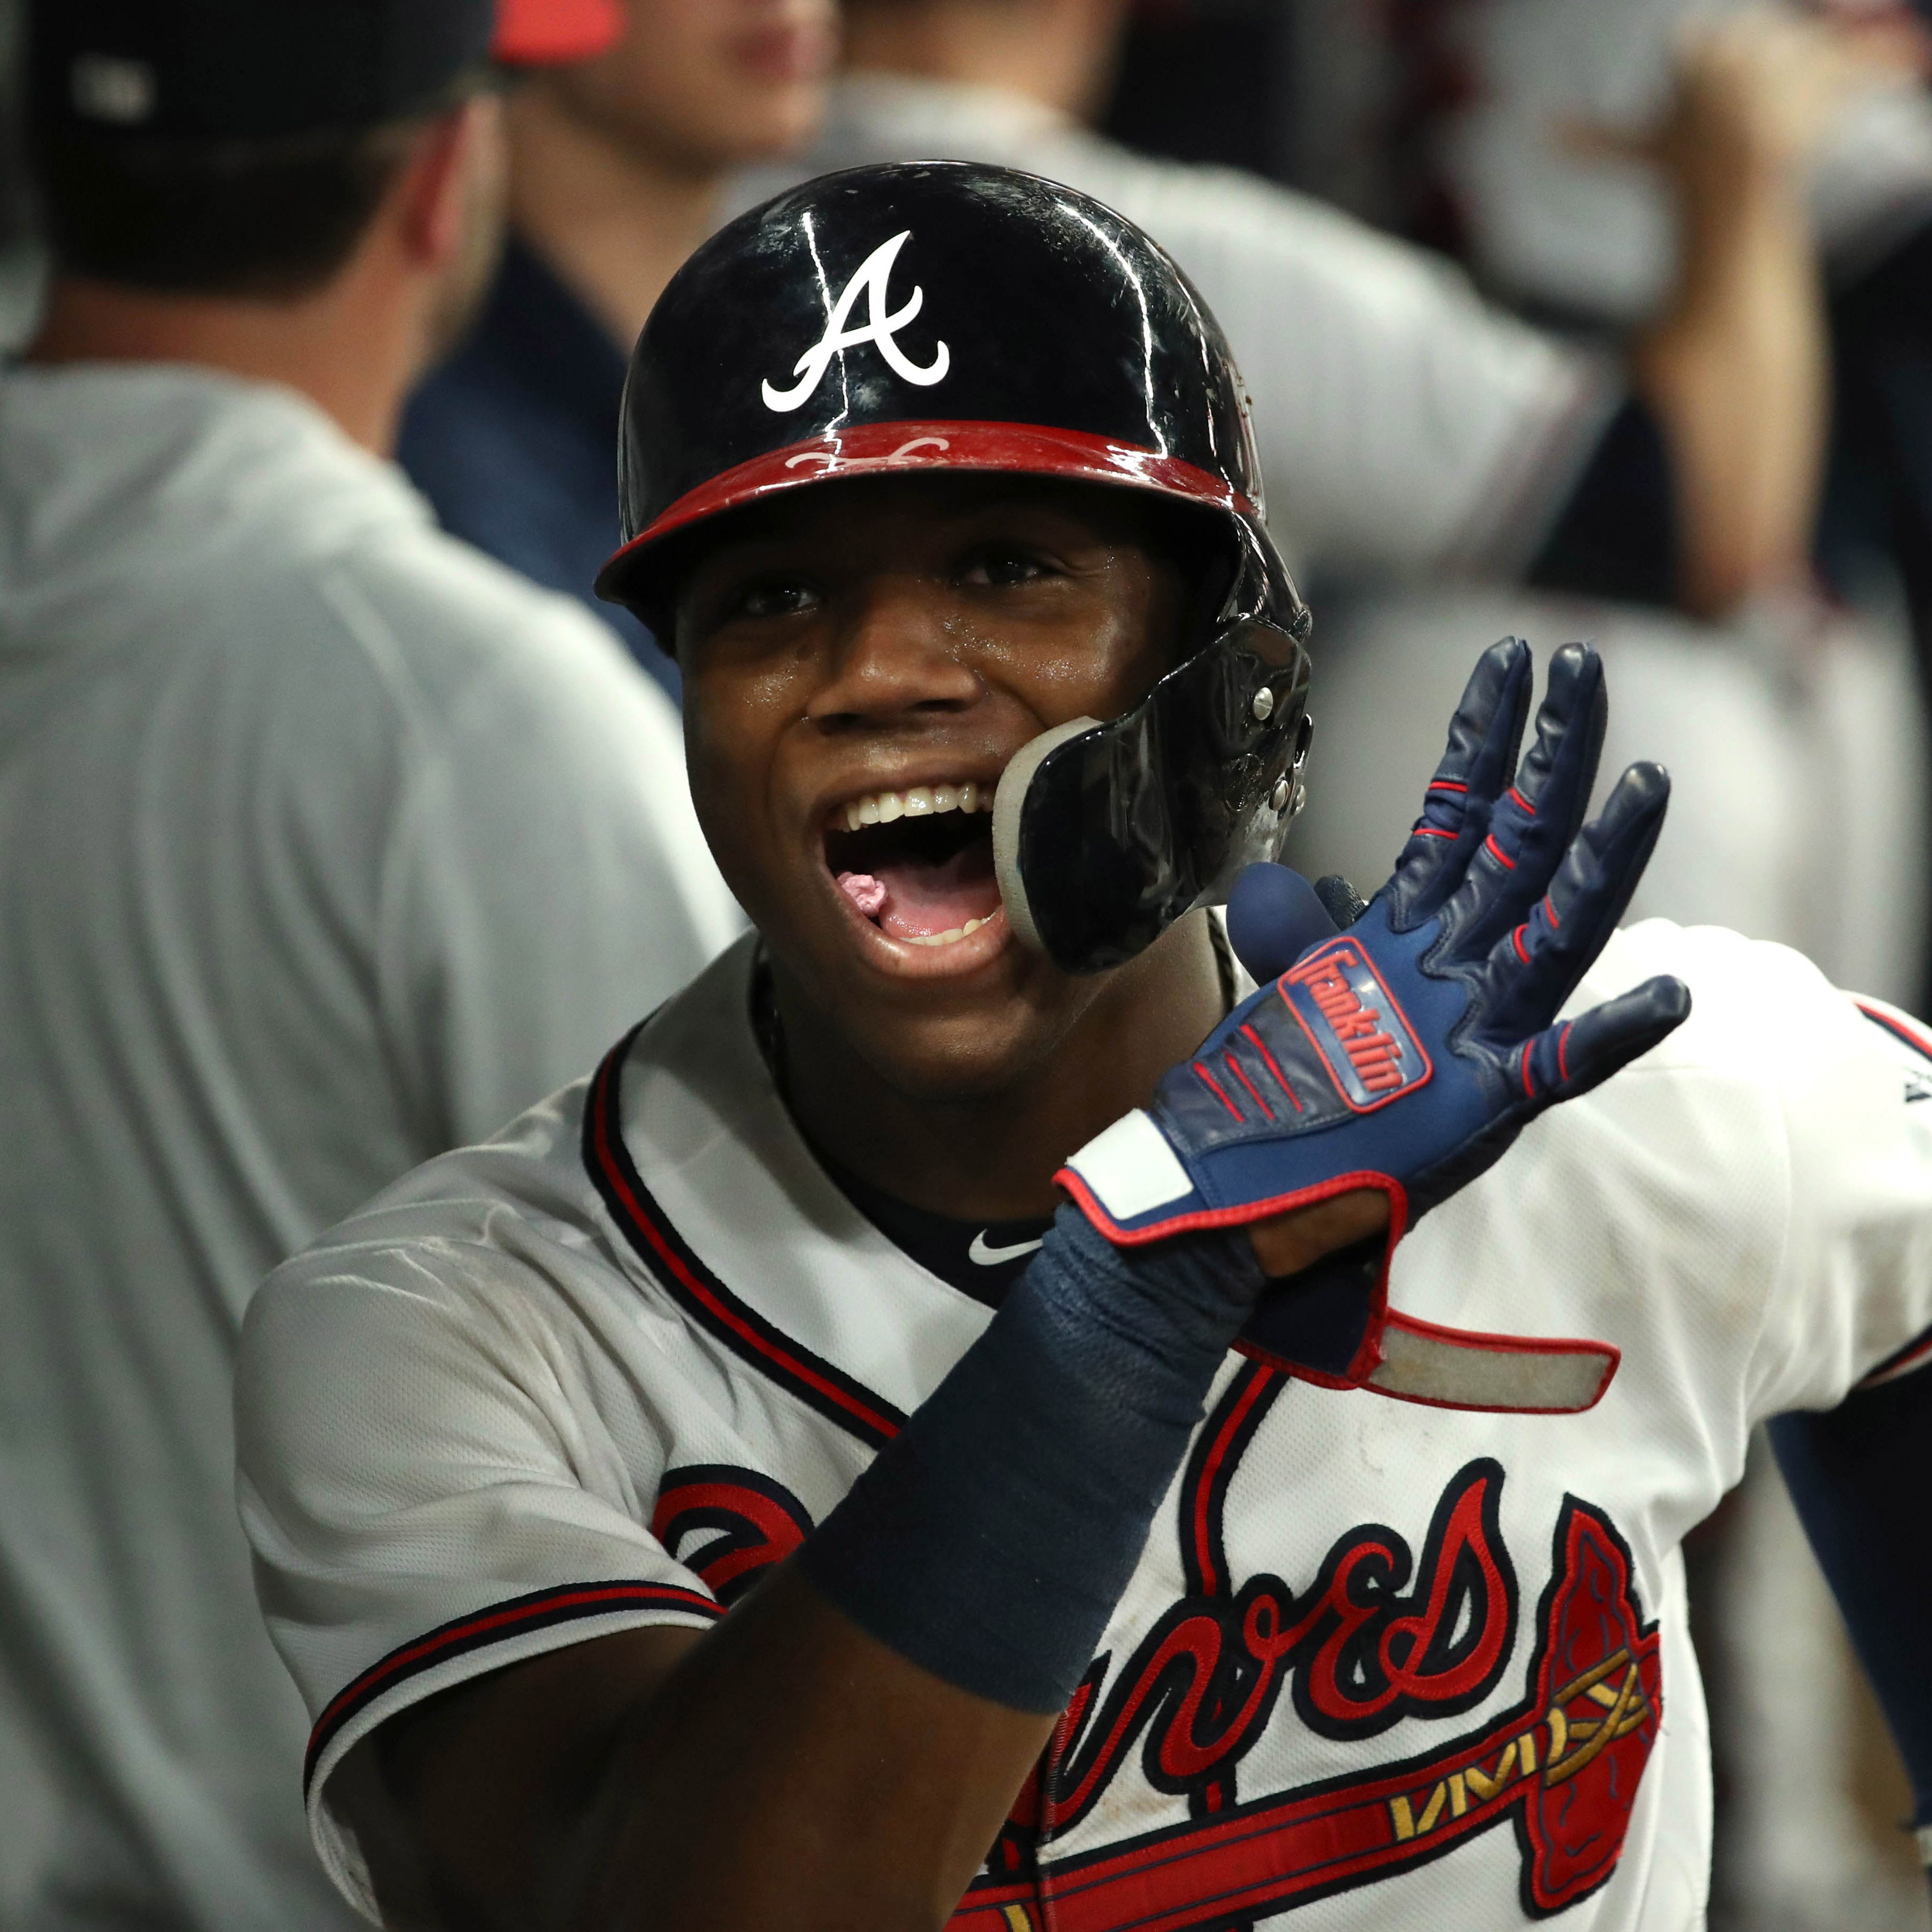 Braves phenom Ronald Acuña Jr. named NL Rookie of the Year